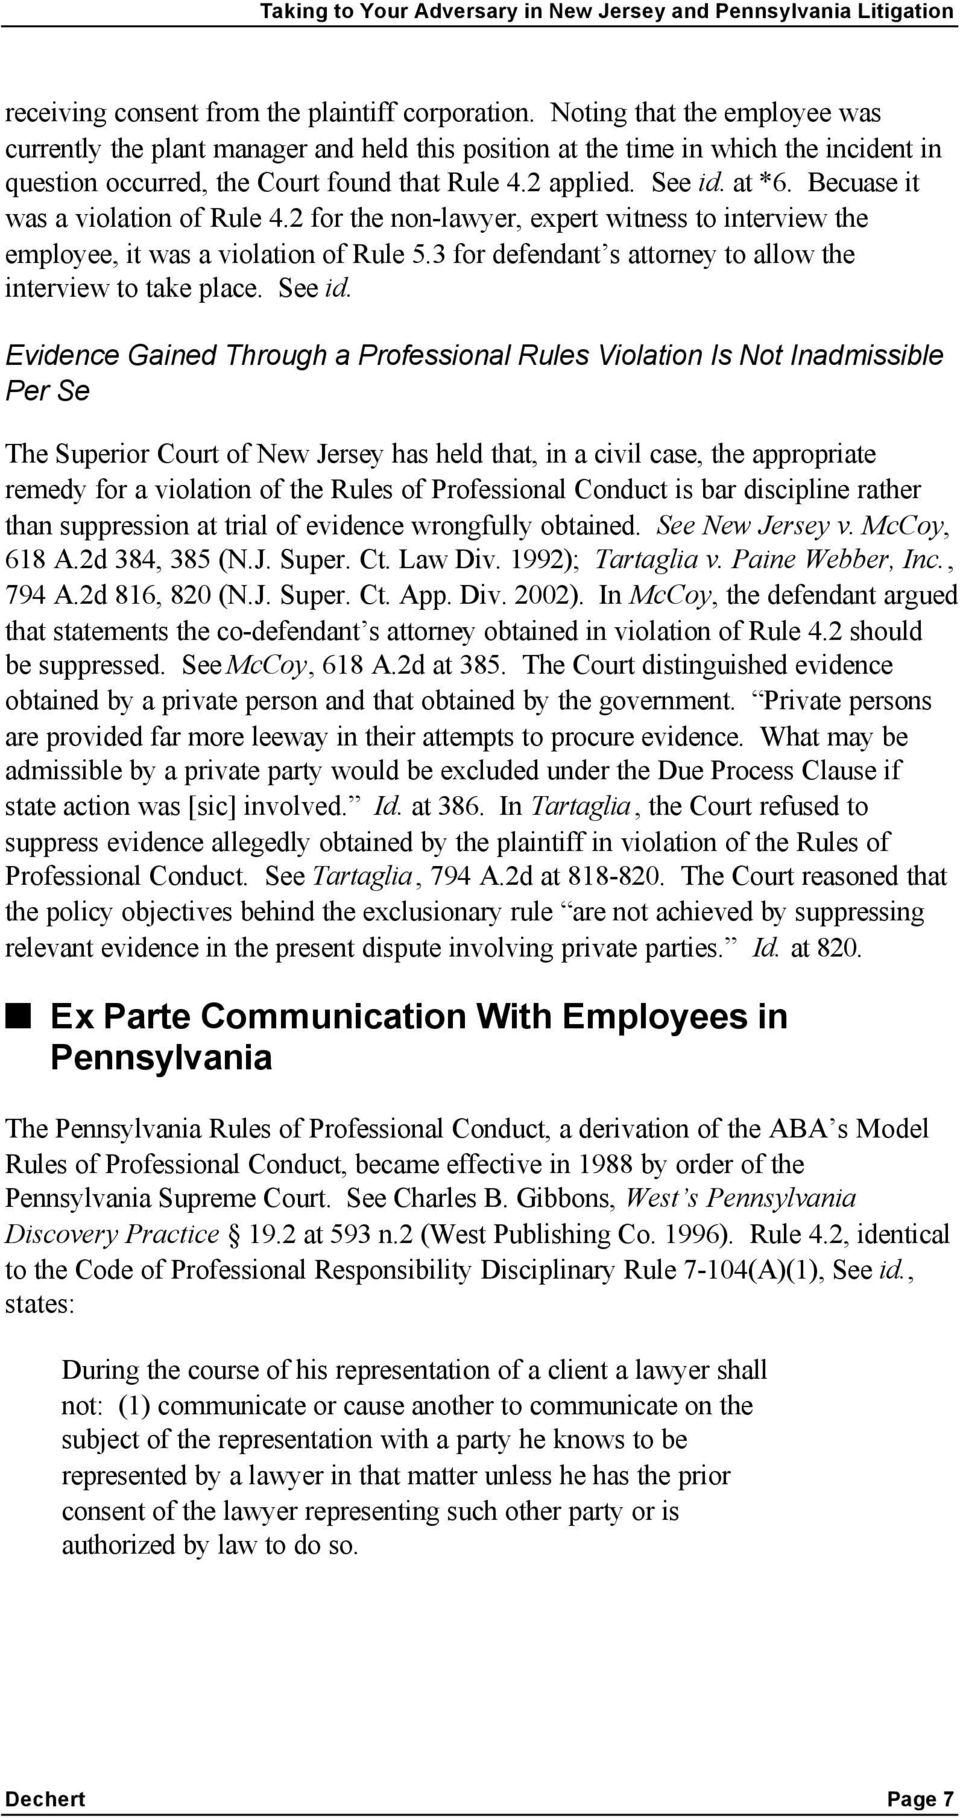 Becuase it was a violation of Rule 4.2 for the non-lawyer, expert witness to interview the employee, it was a violation of Rule 5.3 for defendant s attorney to allow the interview to take place.